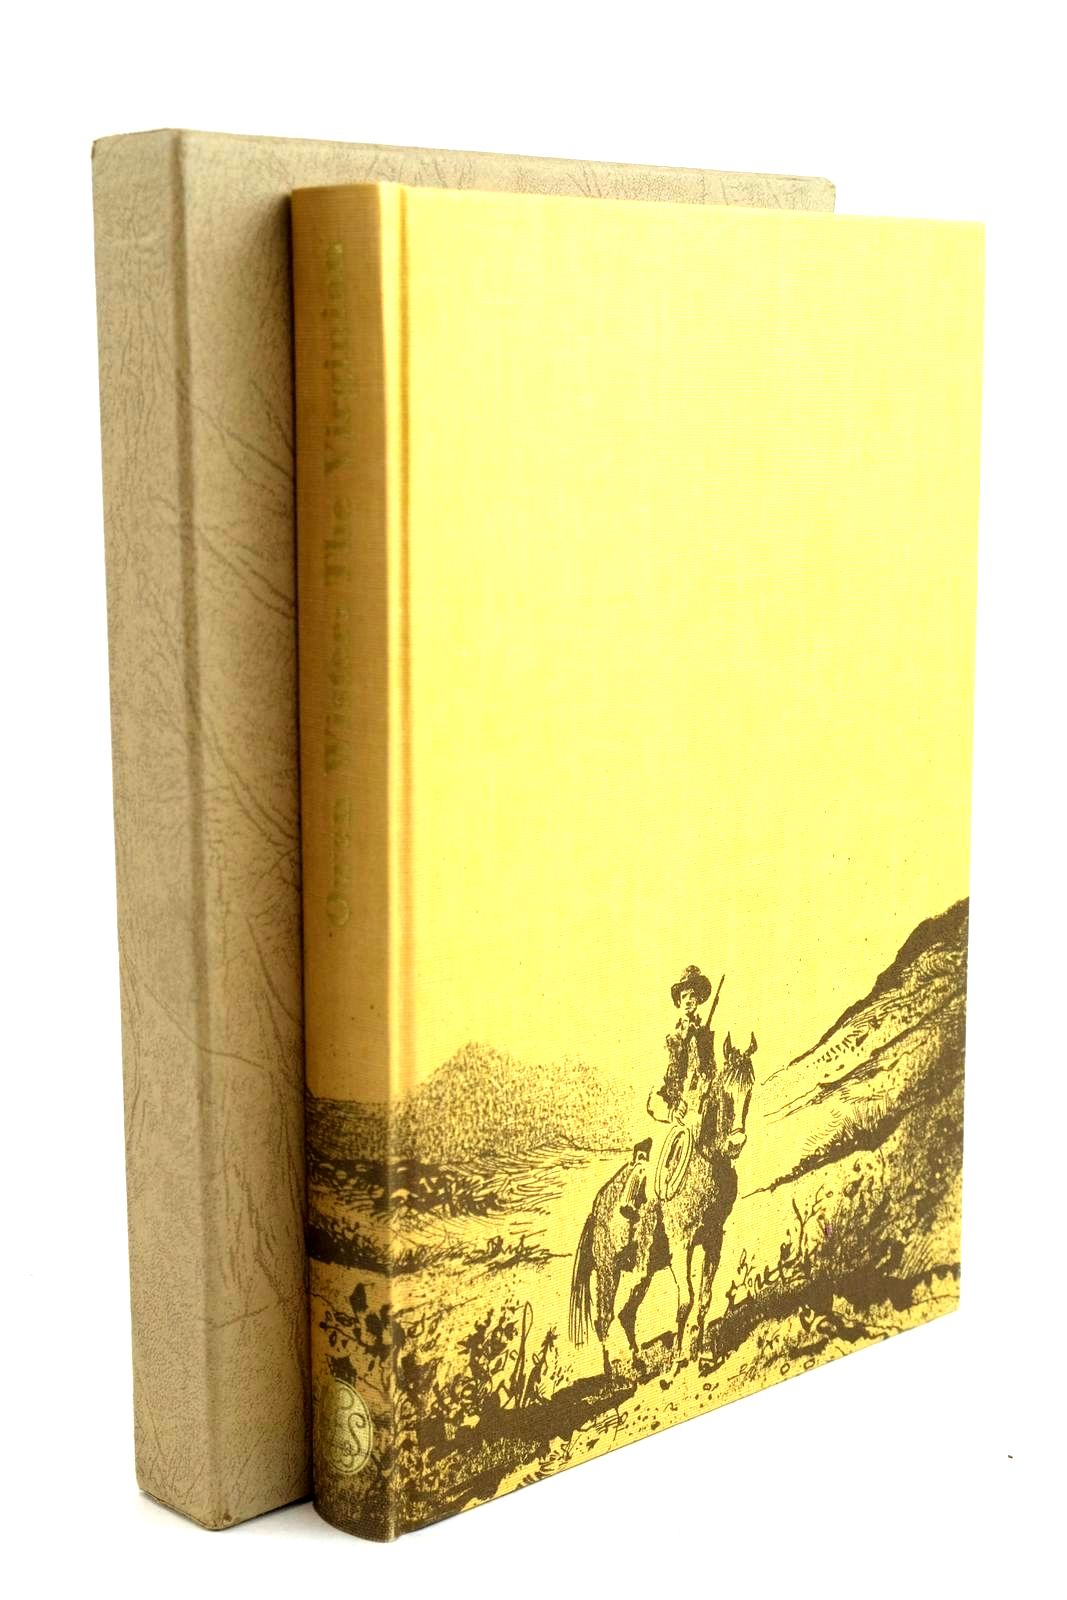 Photo of THE VIRGINIAN written by Wister, Owen illustrated by Biro, Val published by Folio Society (STOCK CODE: 1320513)  for sale by Stella & Rose's Books